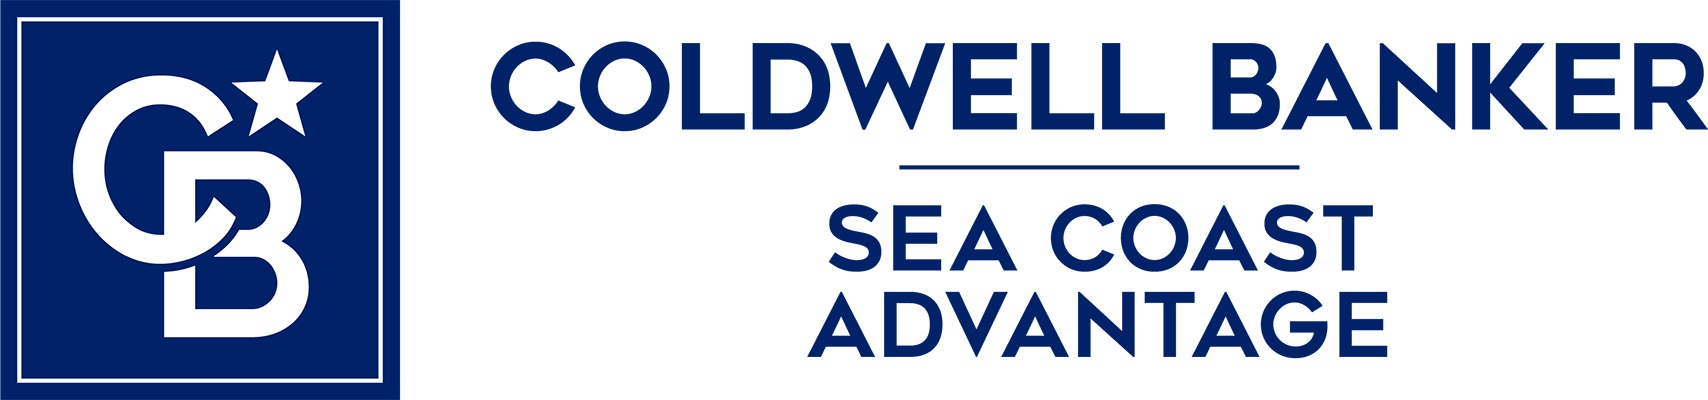 Scott Cowan - Coldwell Banker Sea Coast Advantage Realty